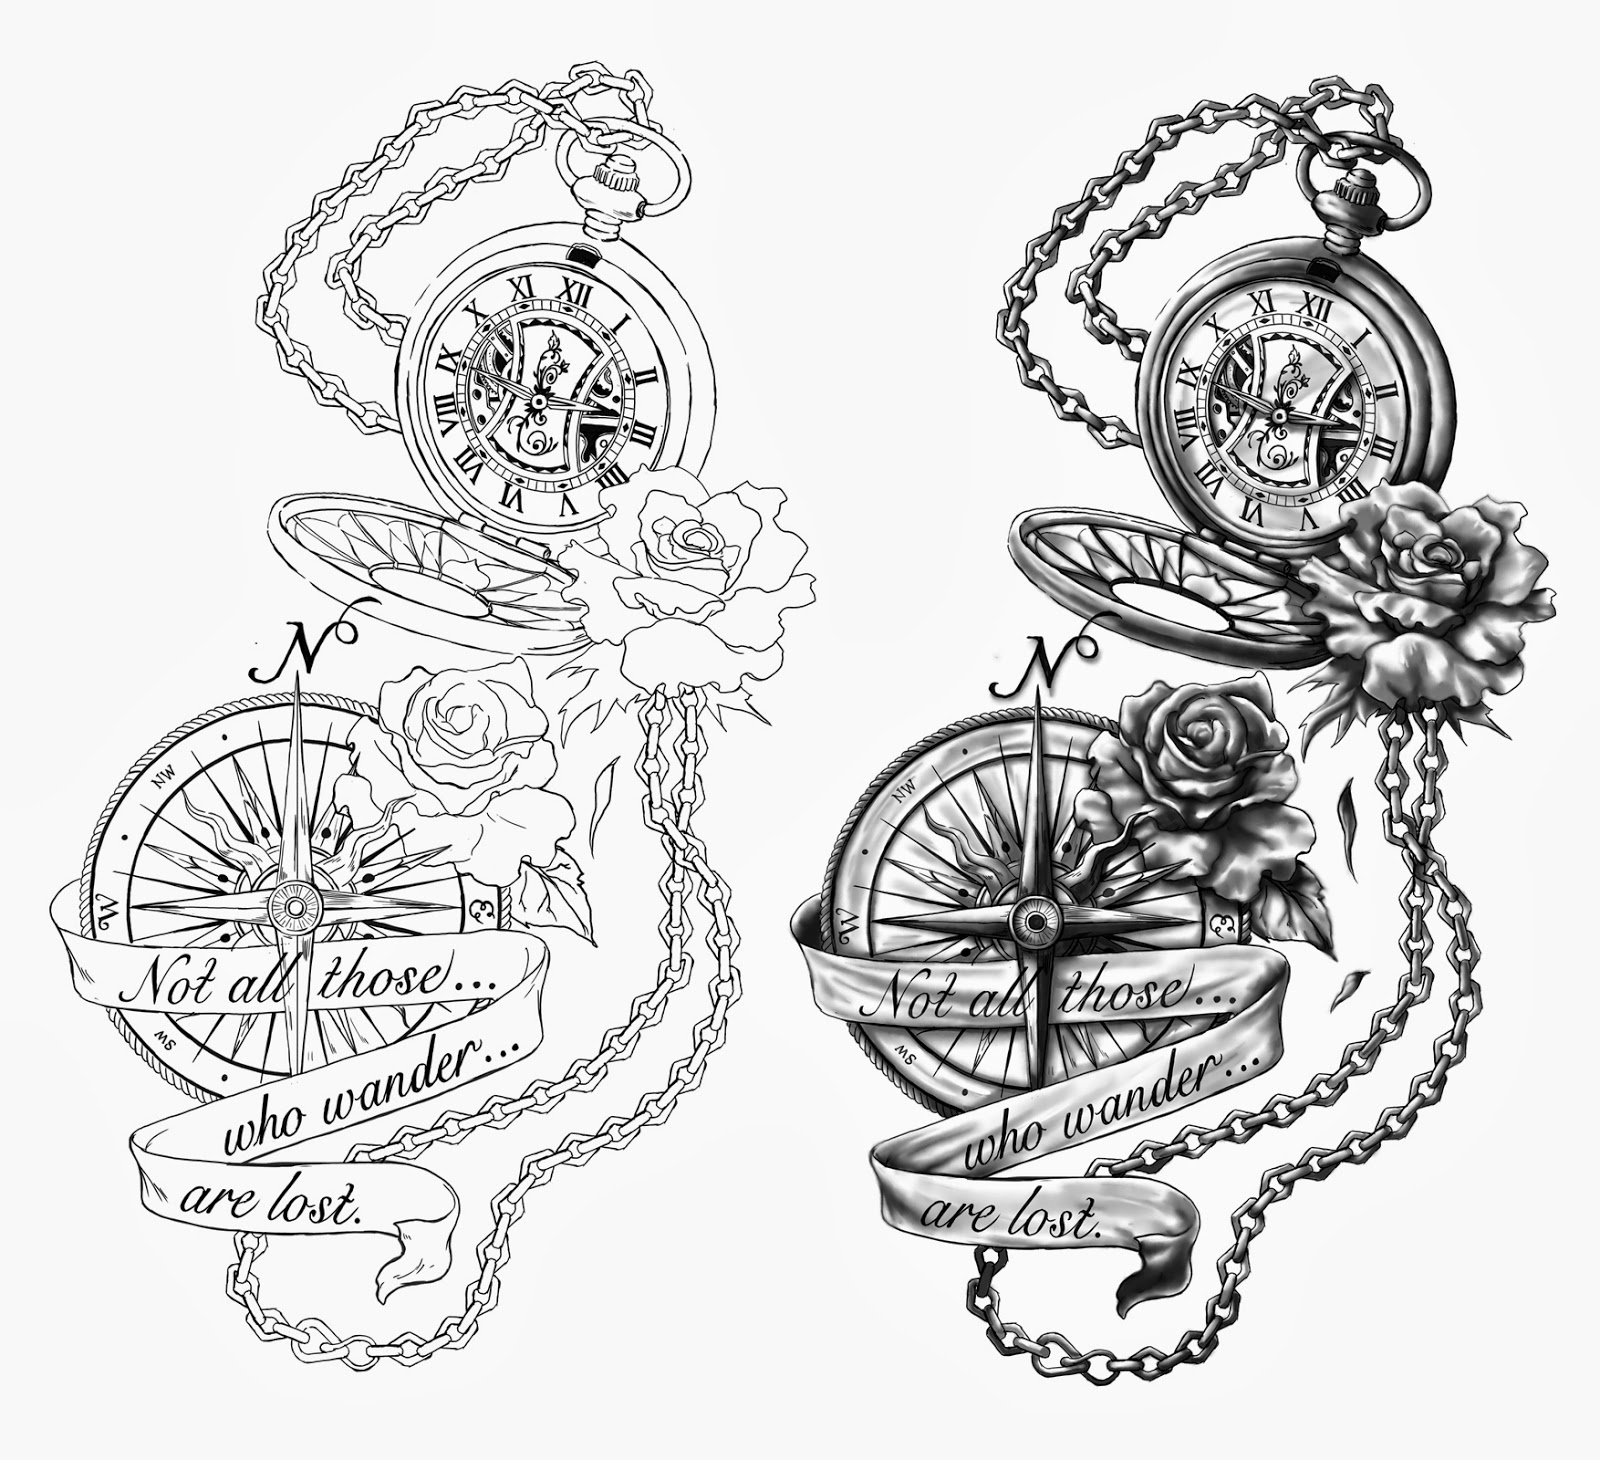 Gallery For gt Pocket Compass Tattoo Drawing